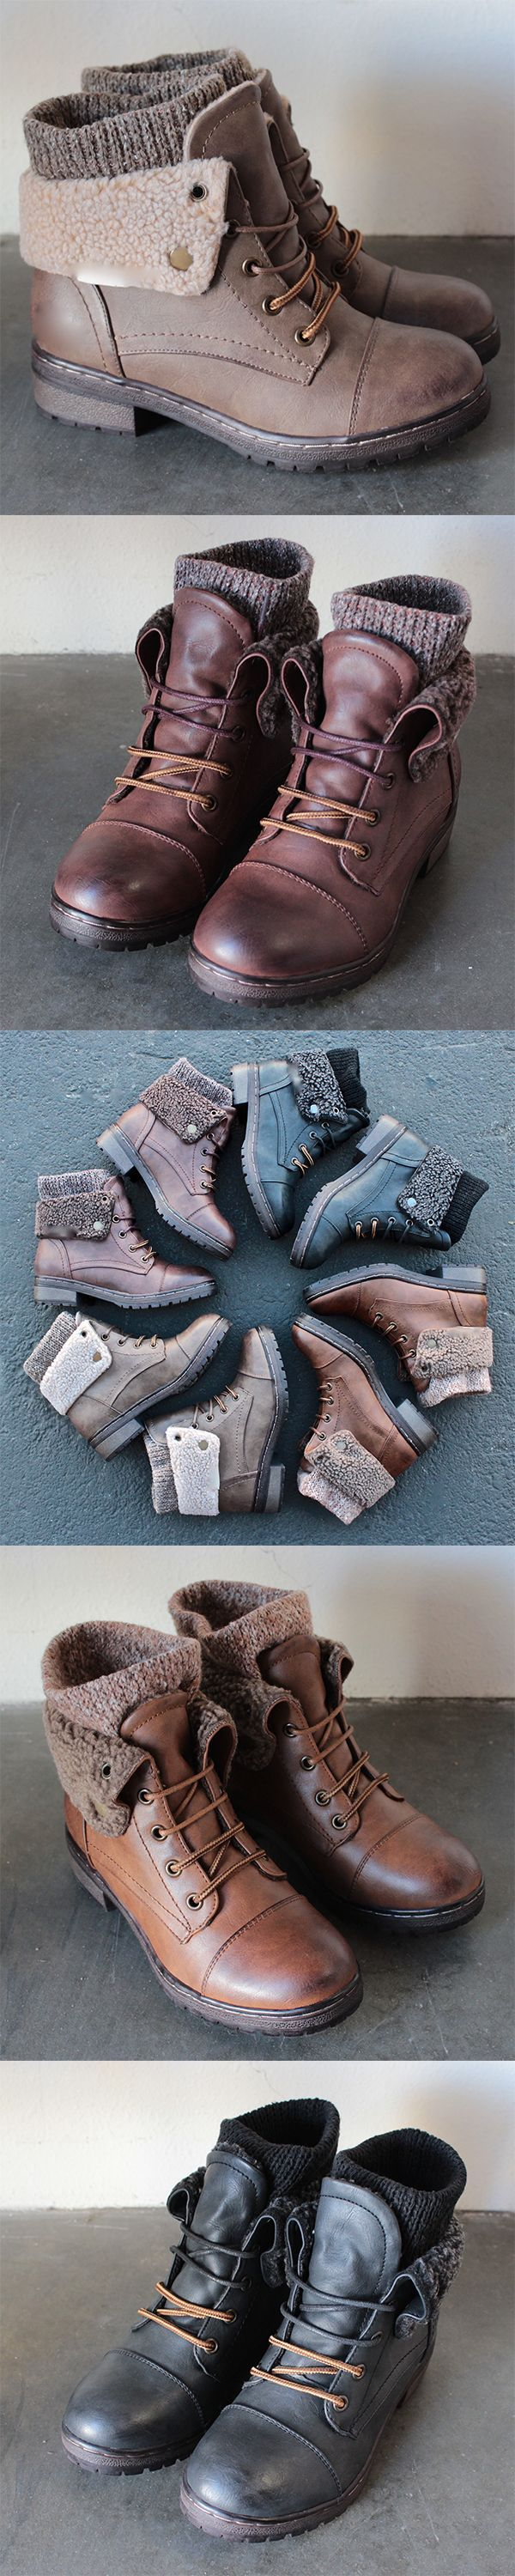 Amazing booties at an amazing price! Check out newest addition of adorable sweater ankle boots at http://www.shophearts.com: